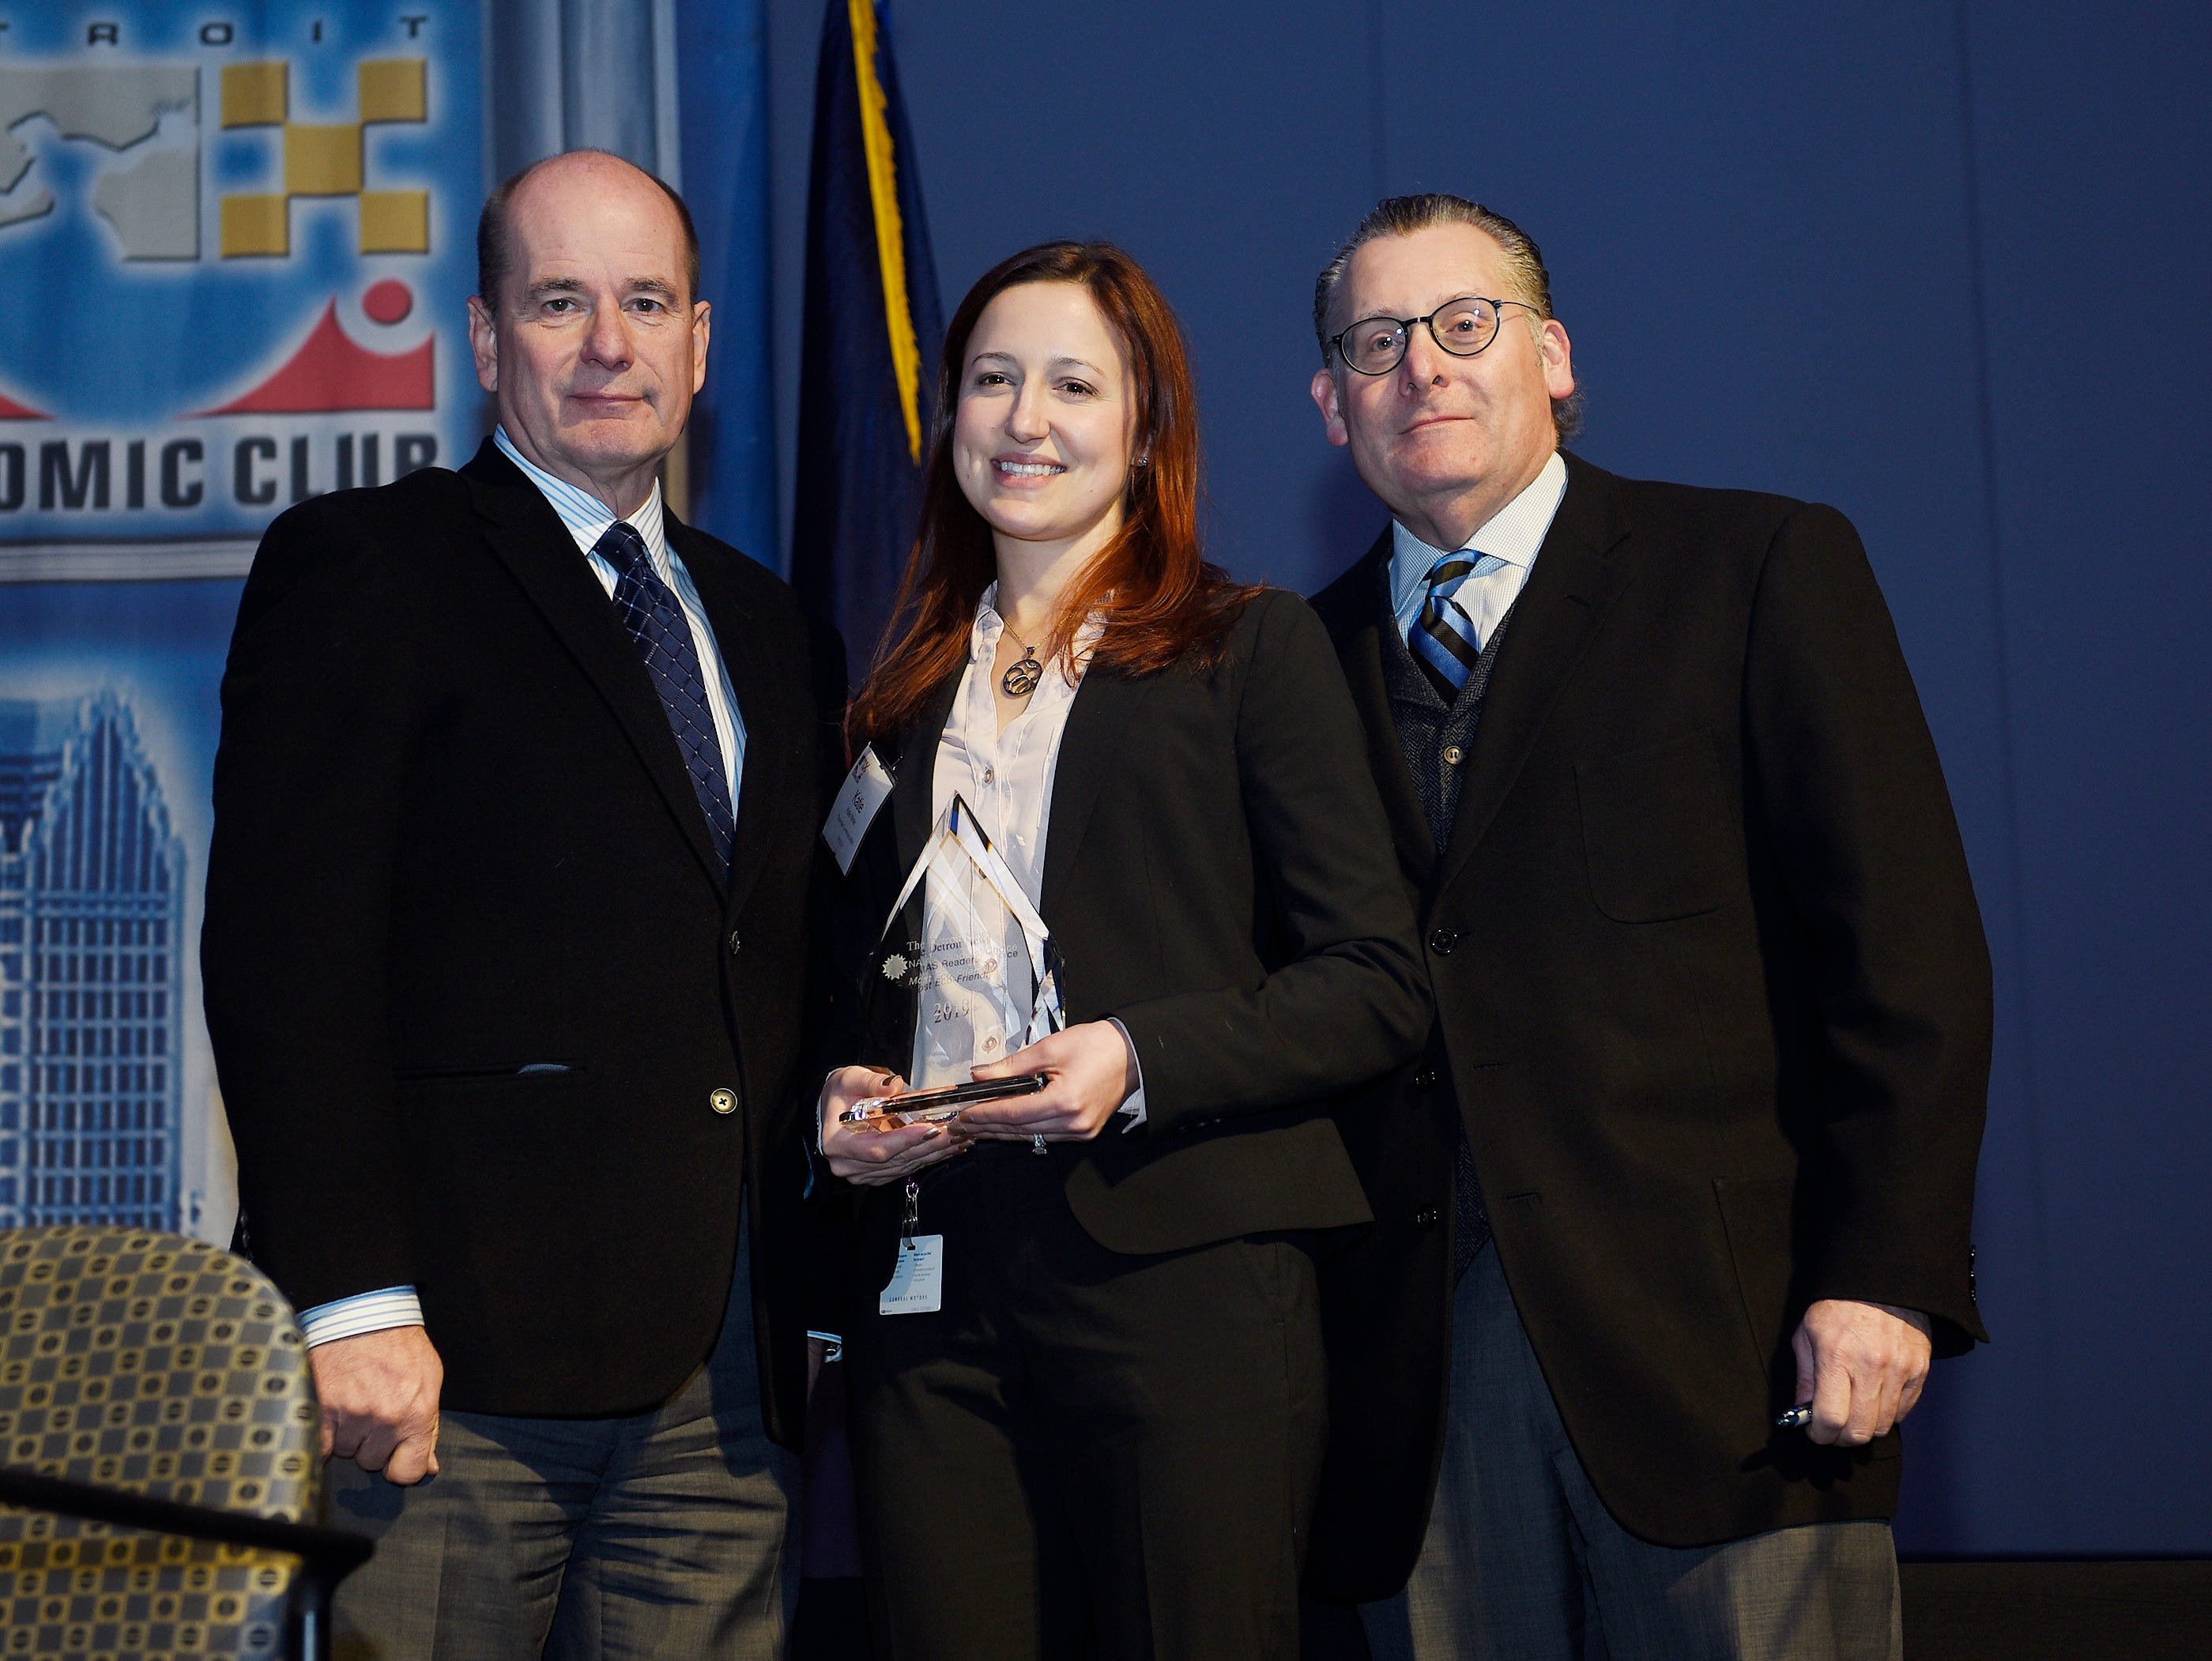 Katie Minter of Chevrolet accepts her award for Most Eco Friendly: Chevy Bolt ev from Detroit News Editorial Page Editor Nolan Finley, left, and Business Columnist Daniel Howes.